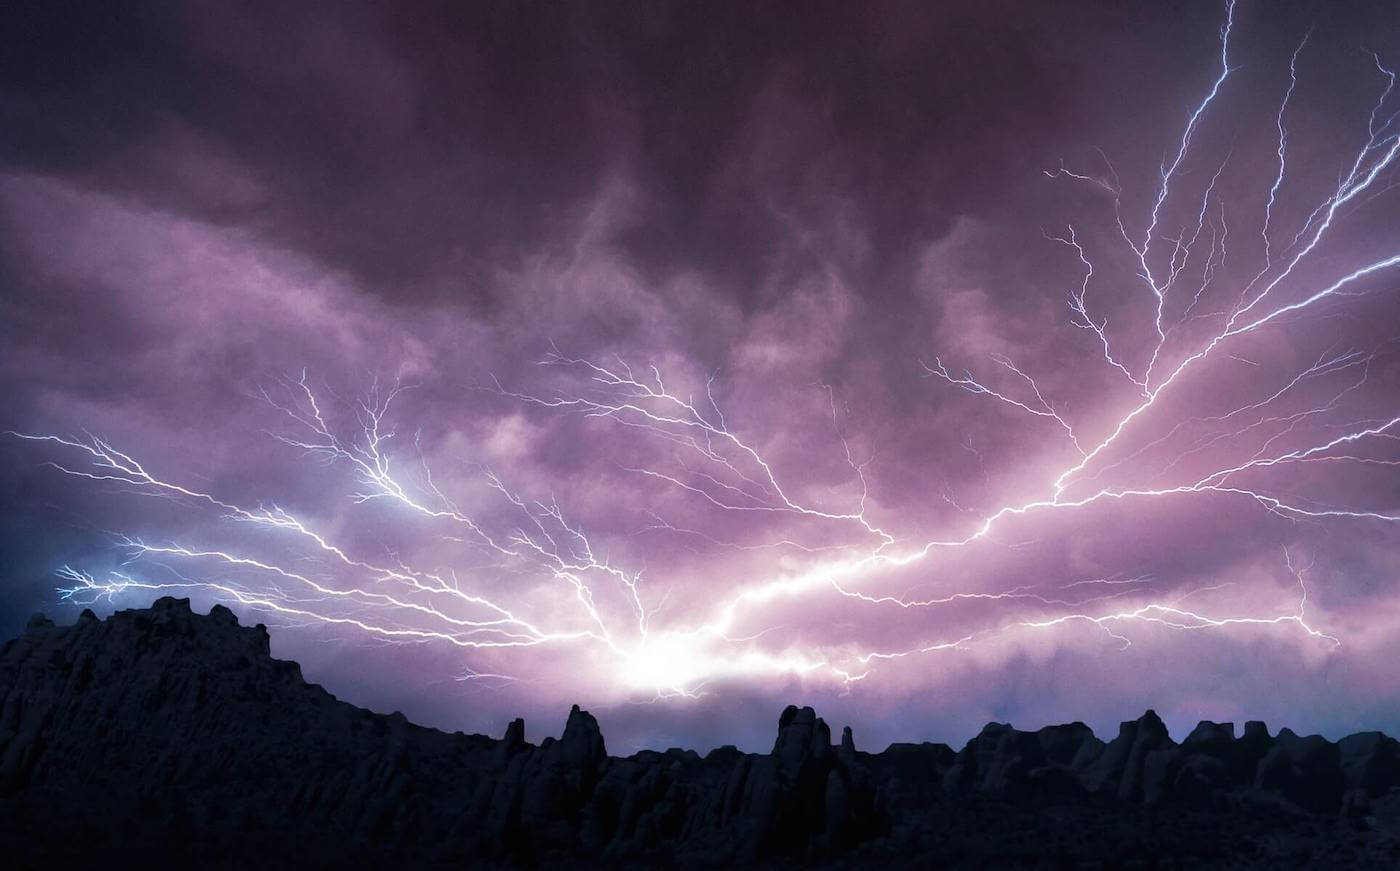 lightning striking in the sky with mountains on the horizon wilderness nursing